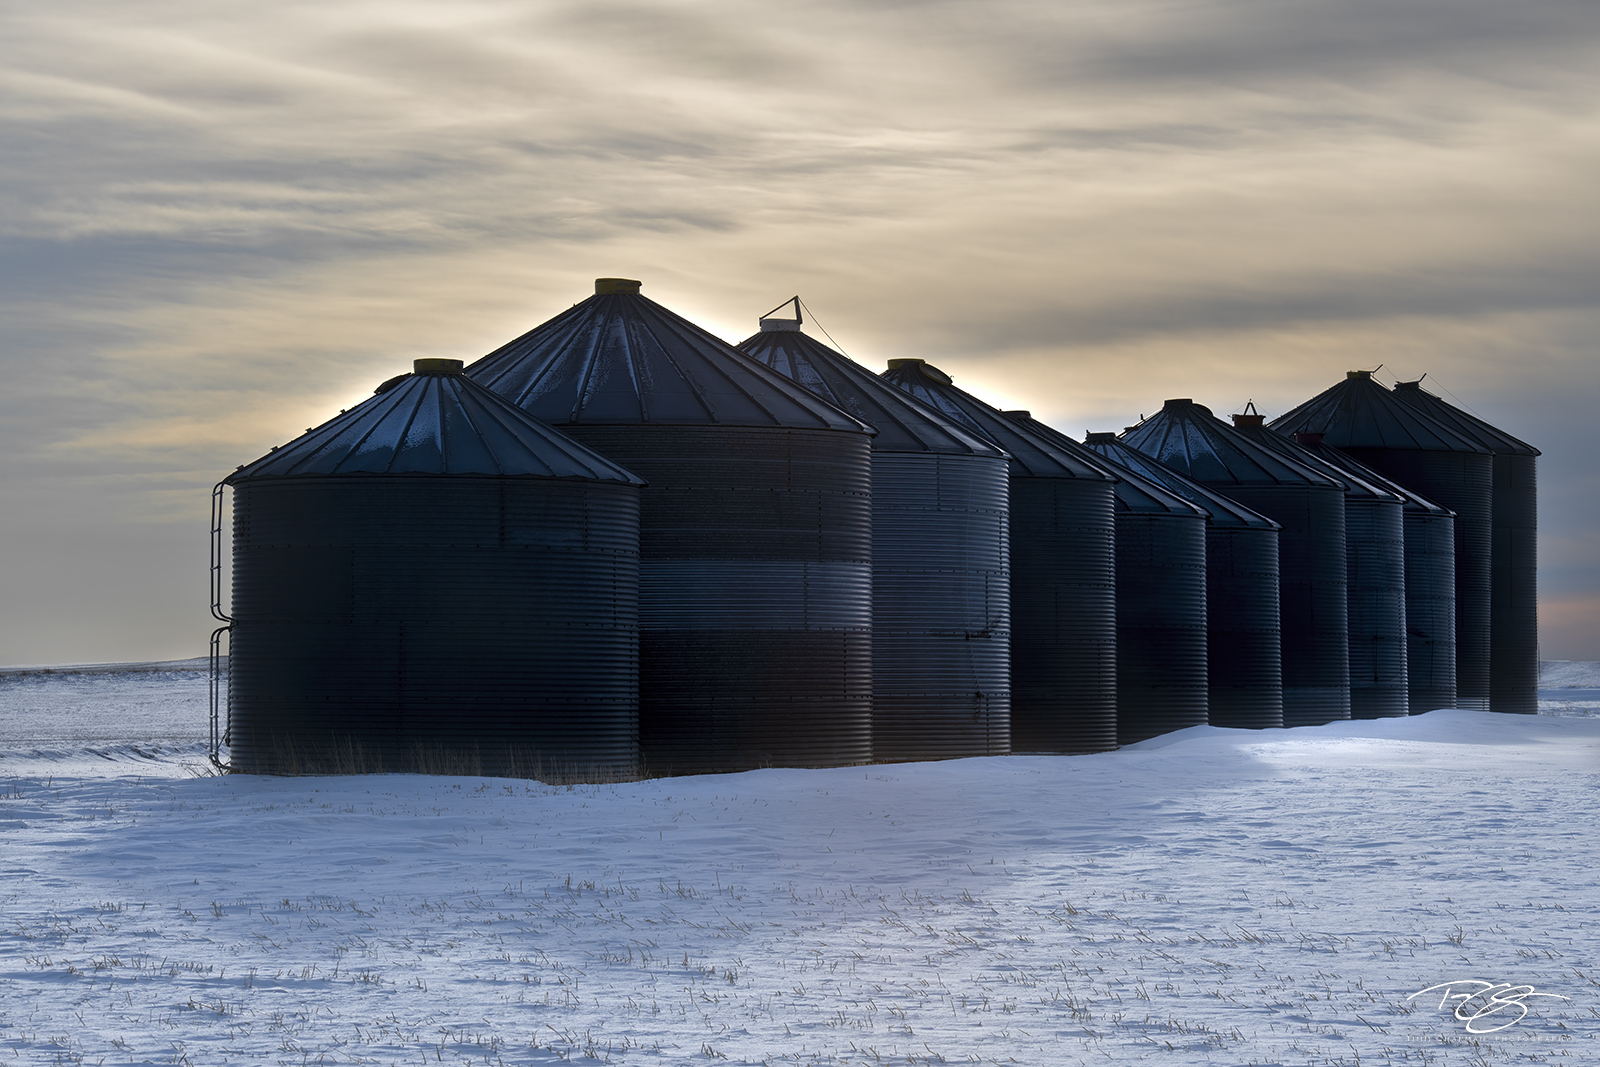 A long line of grain silos huddle together for warmth under the cold, brooding winter sky